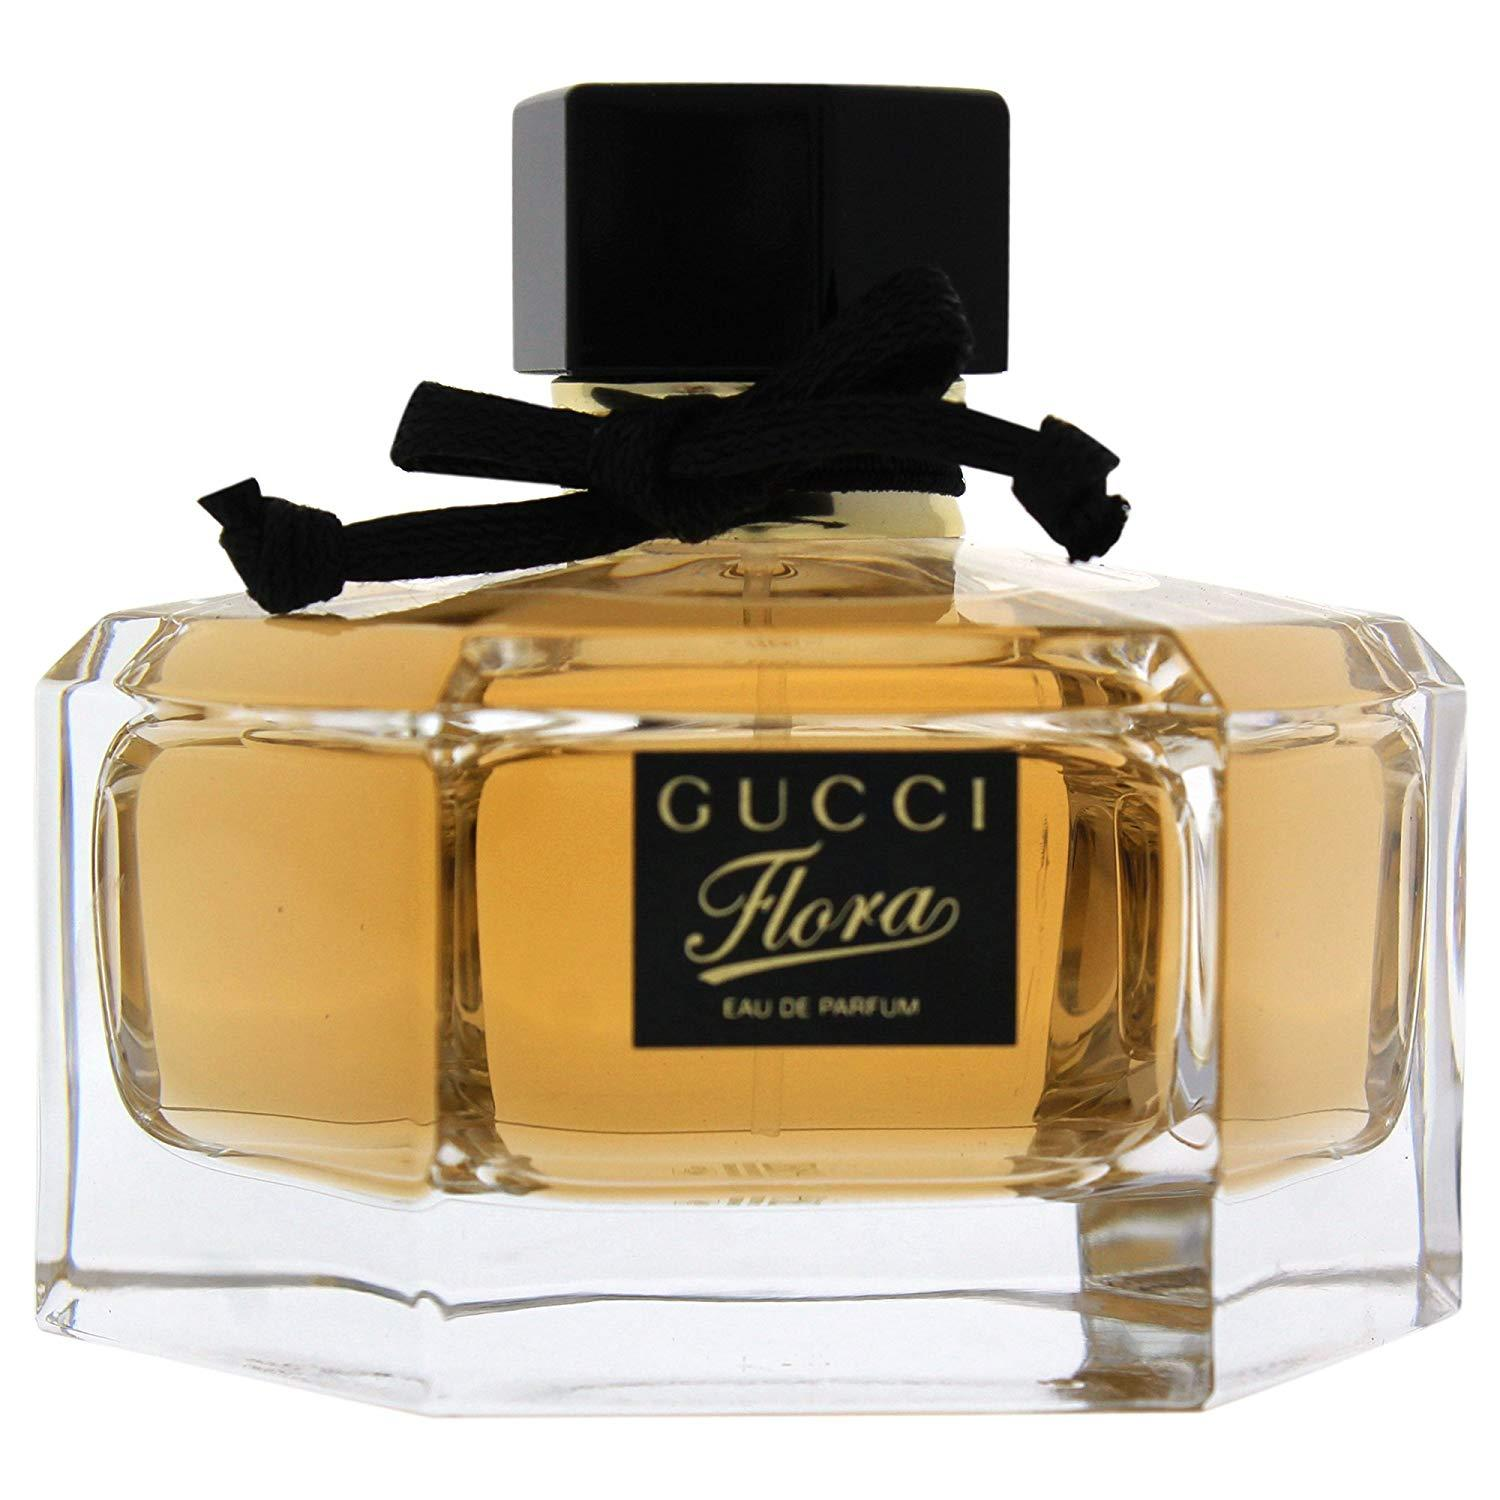 Buy Hermesj Logucci Health Beauty At Best Prices Online In Nepal Hermes Terre D Man Eau De Parfum 75 Ml Gucci Flora